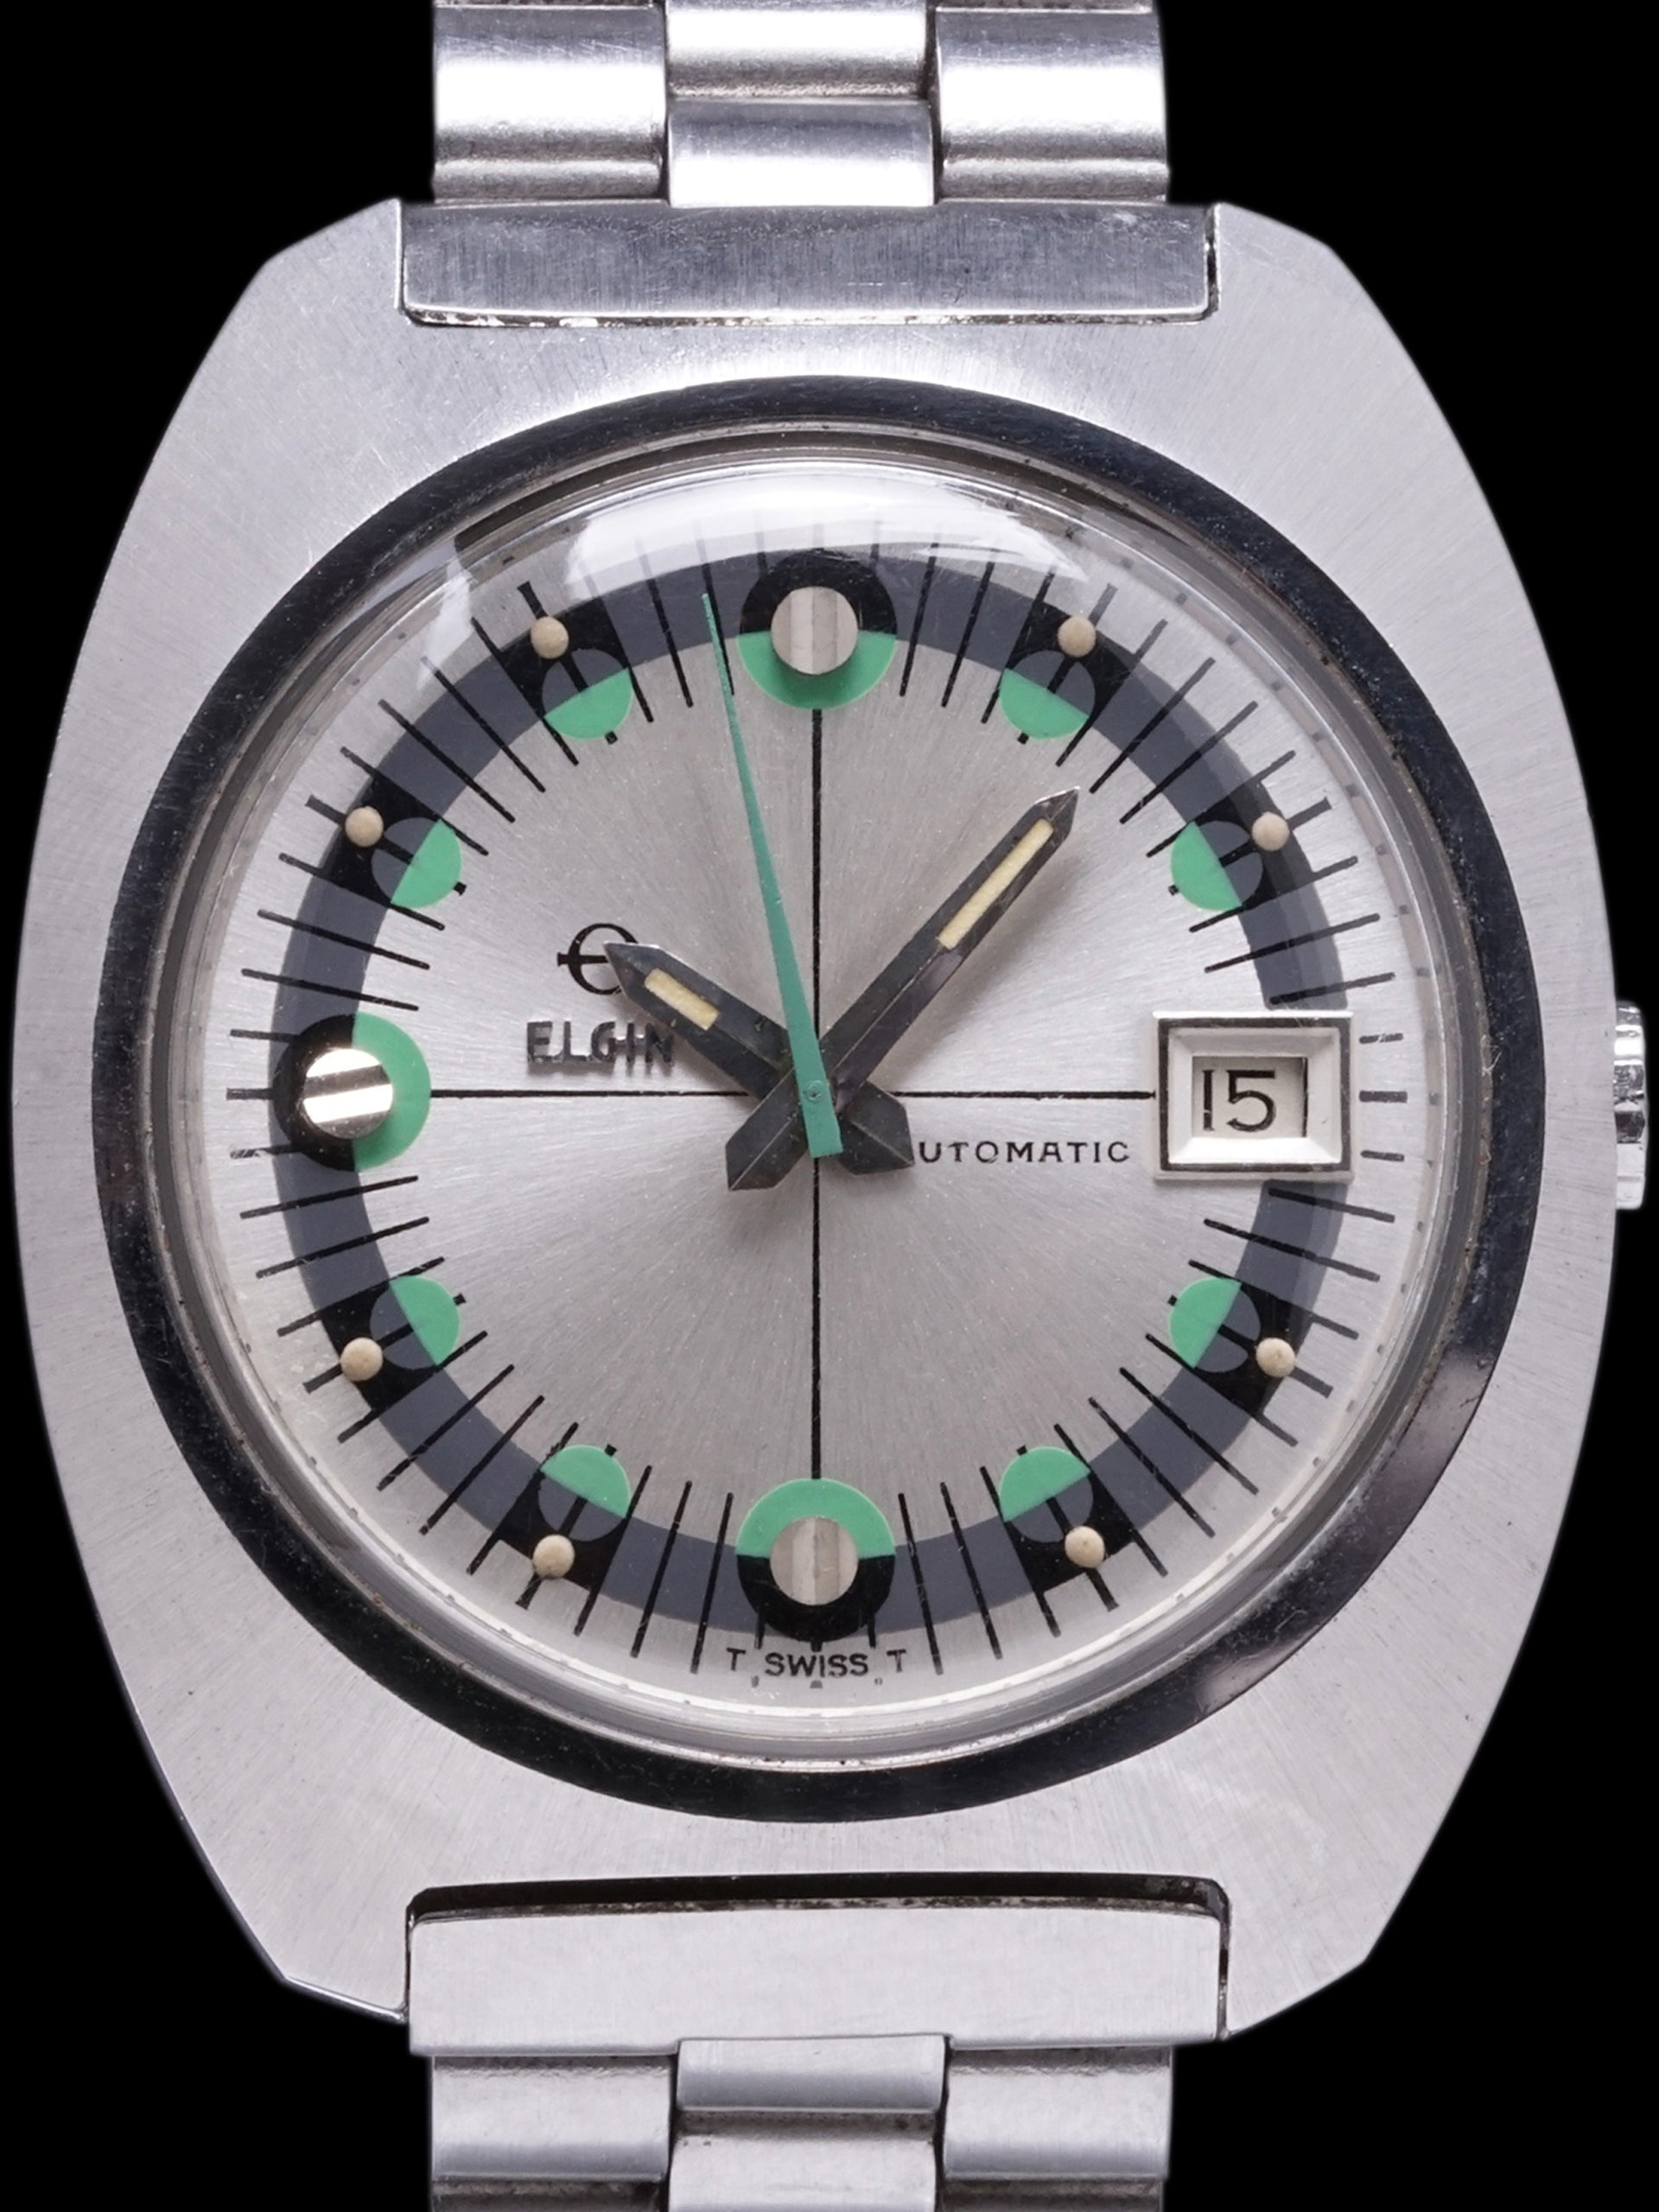 1960s Elgin Automatic